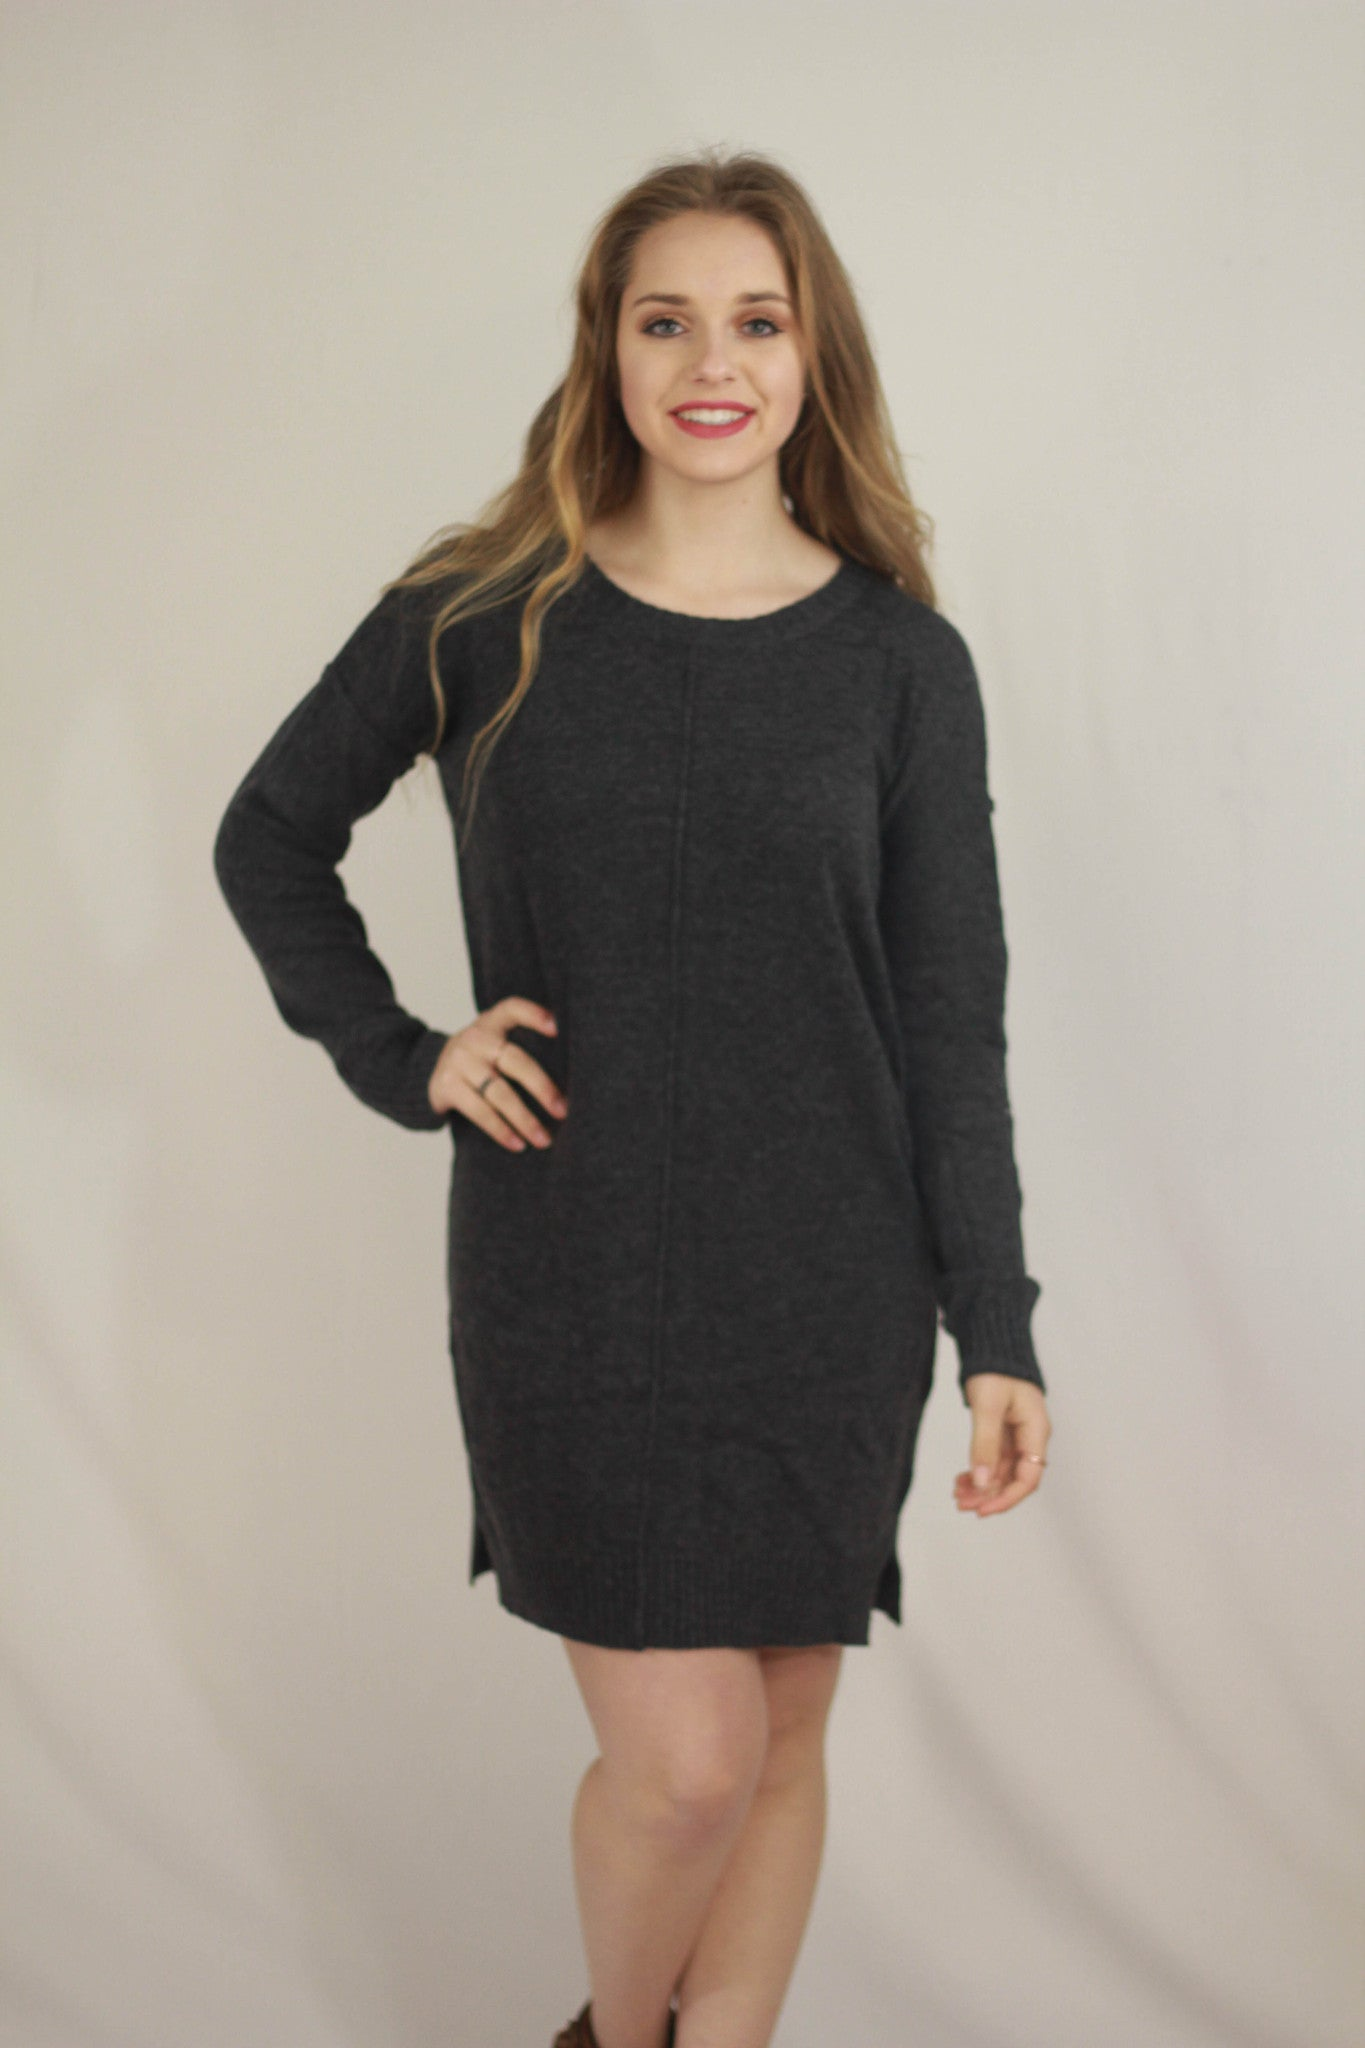 Lauren Sweater Dress